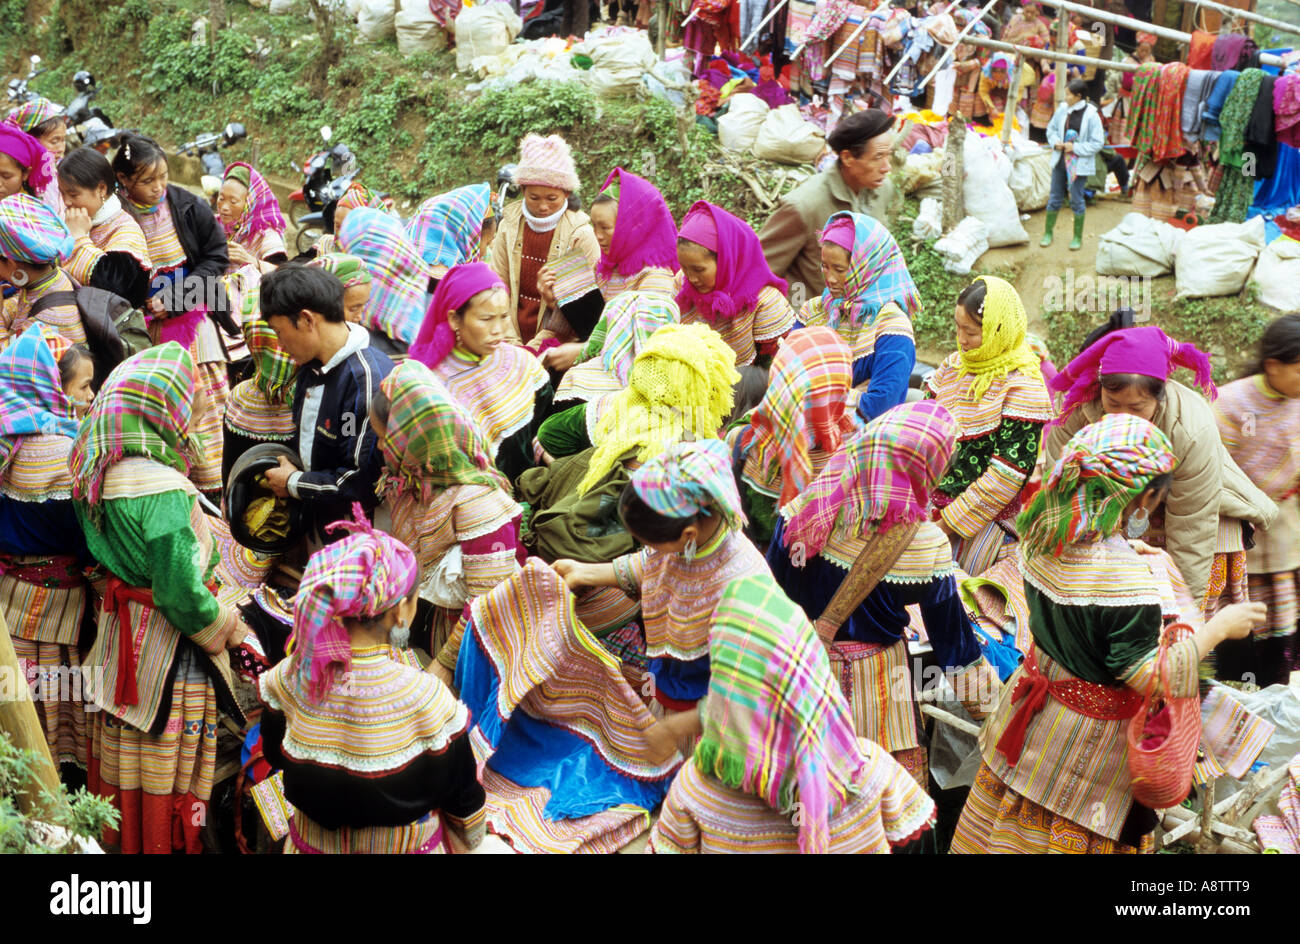 Overhead view of crowd of traditionally dressed Flower Hmong women at the Saturday market, Can Cau, NW Viet Nam Stock Photo